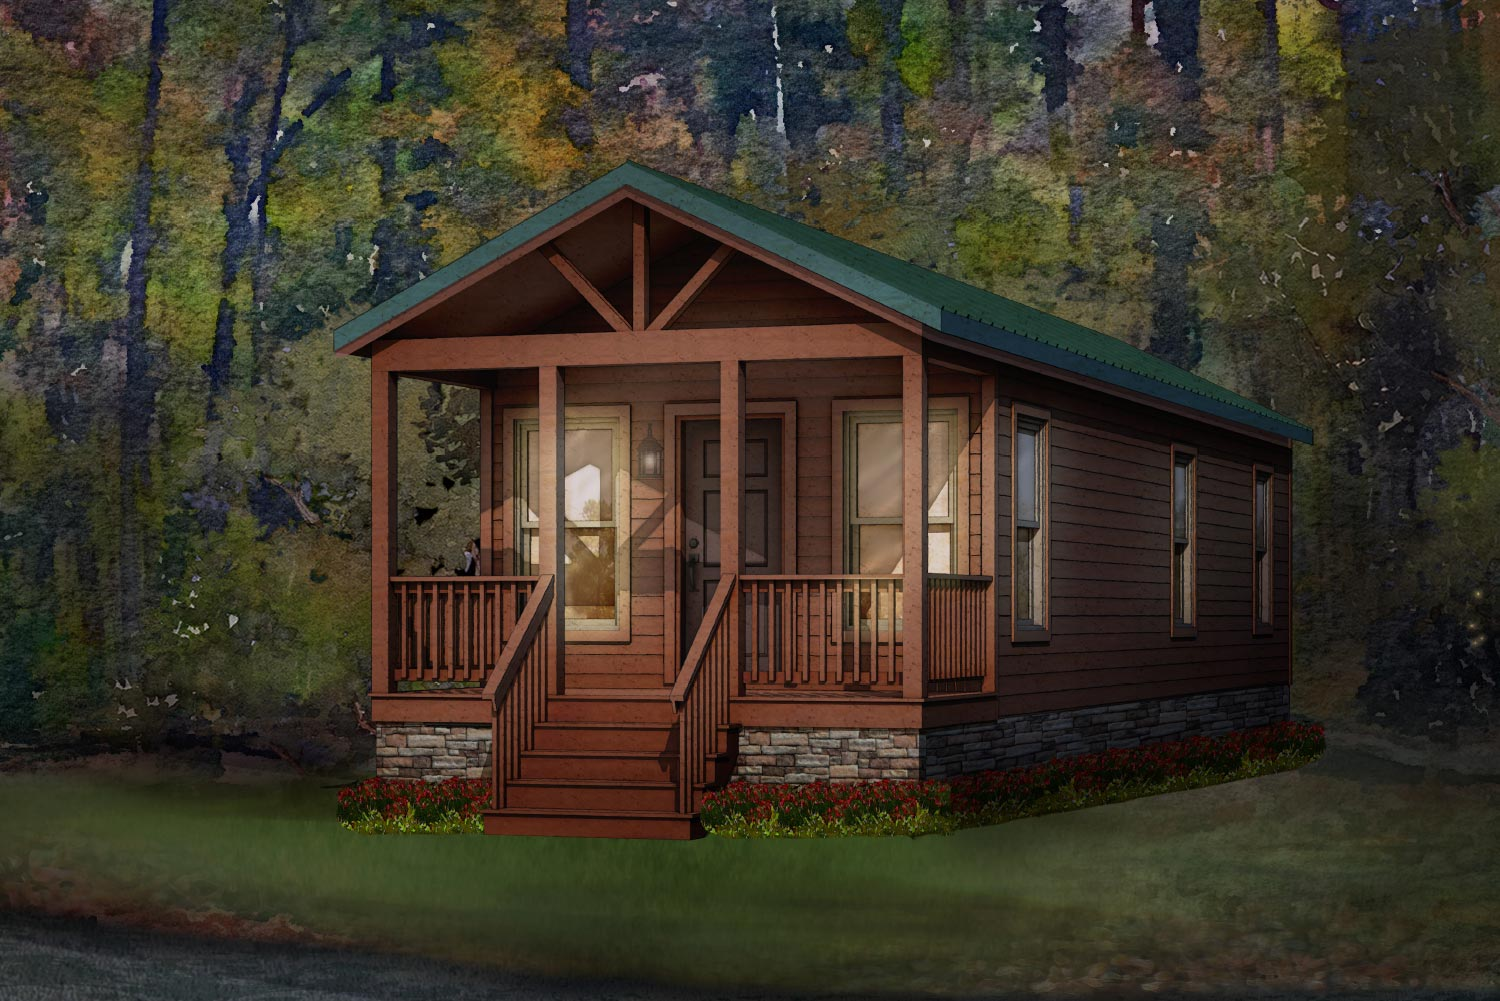 pine cone modular home rendering